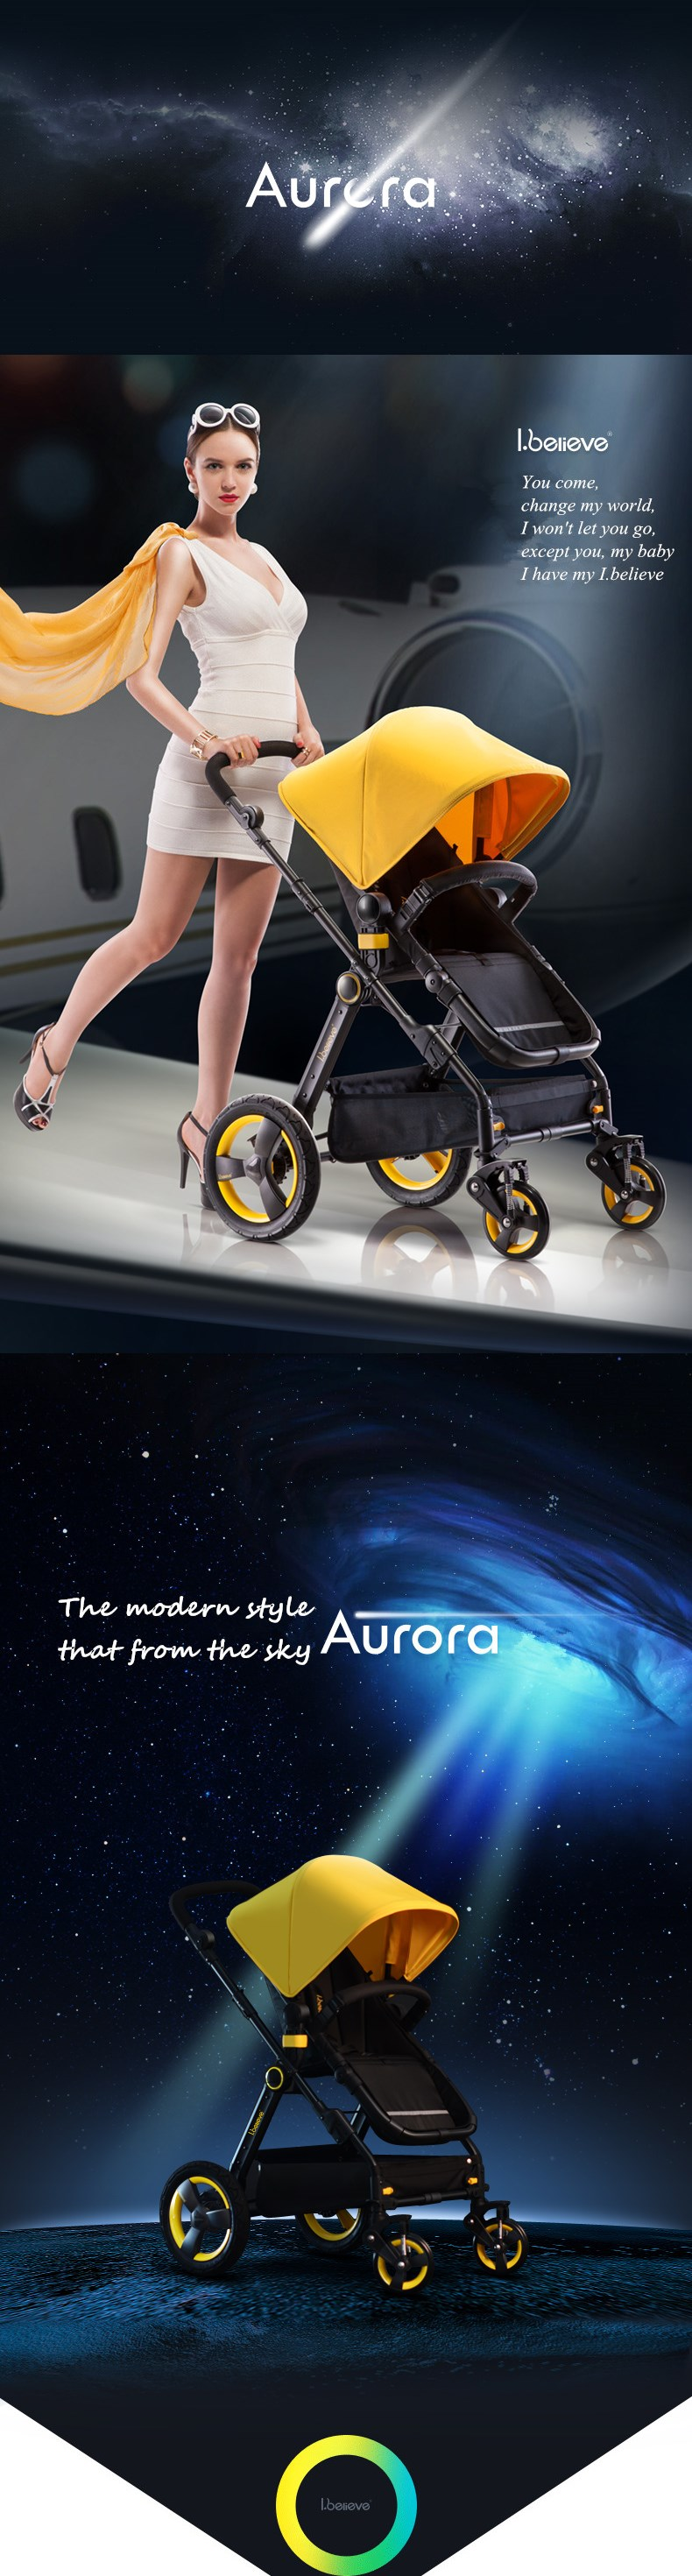 Aluminum Alloy Frame Material and Baby Stroller Type safe material baby stroller carriage I-S021